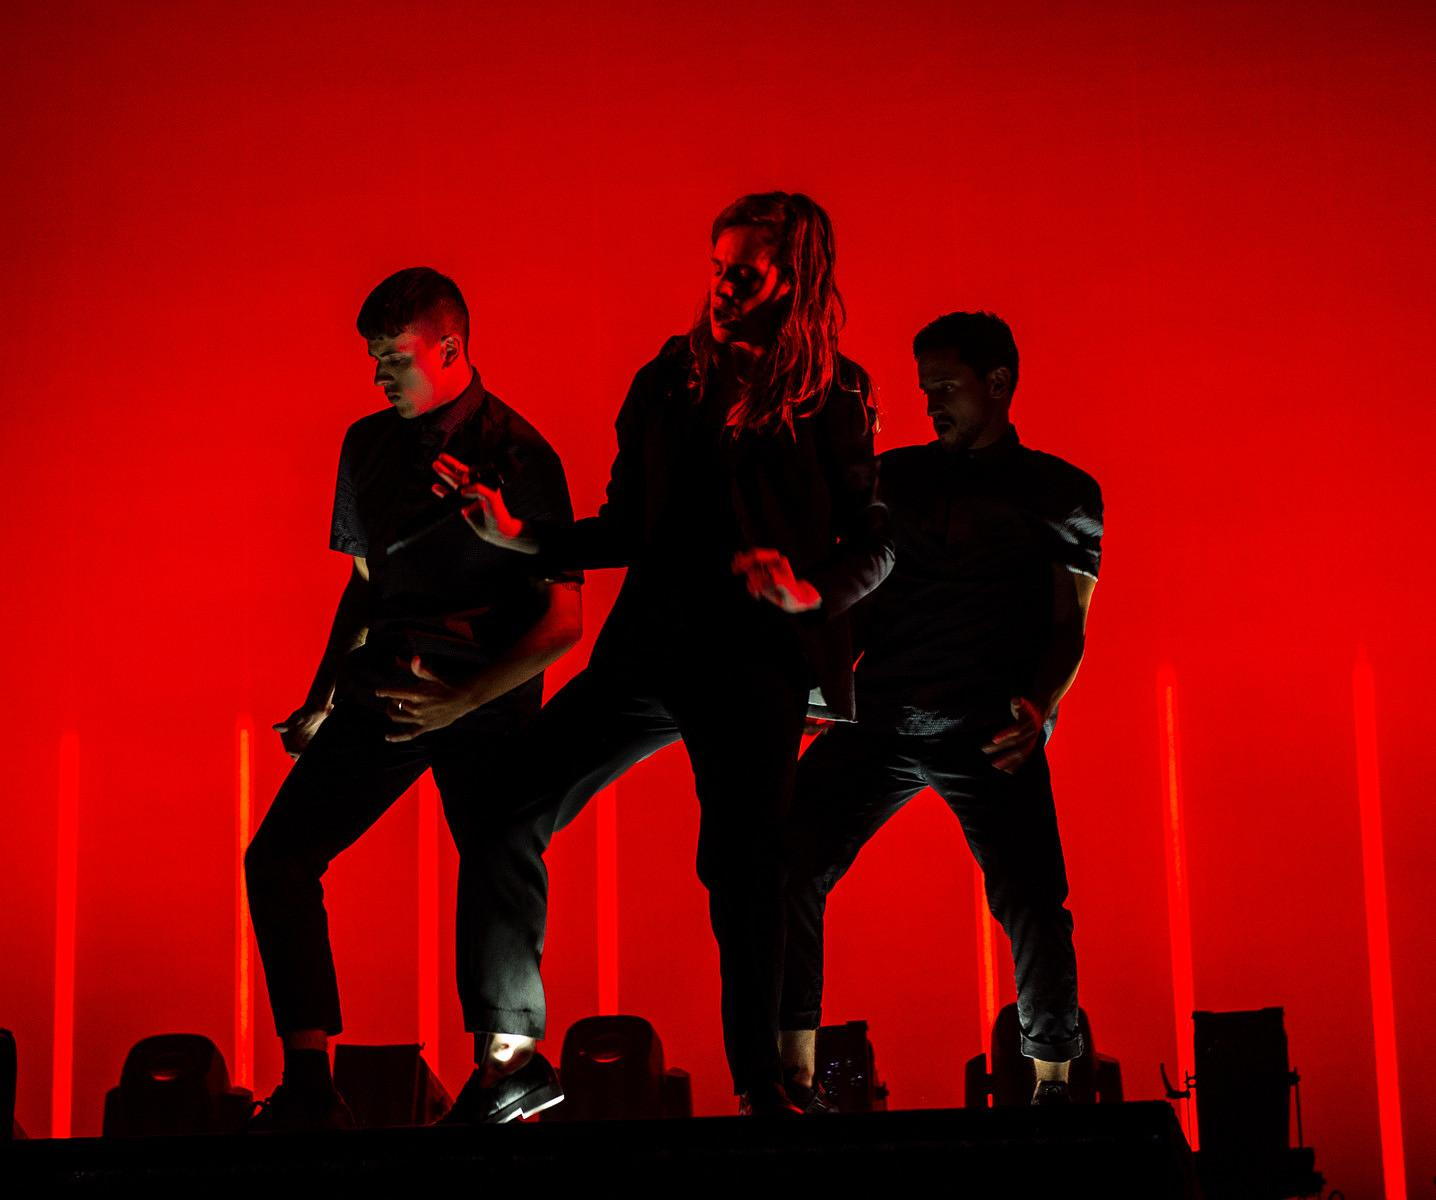 christine_and_the_queens_ven15_acolliard-4-33